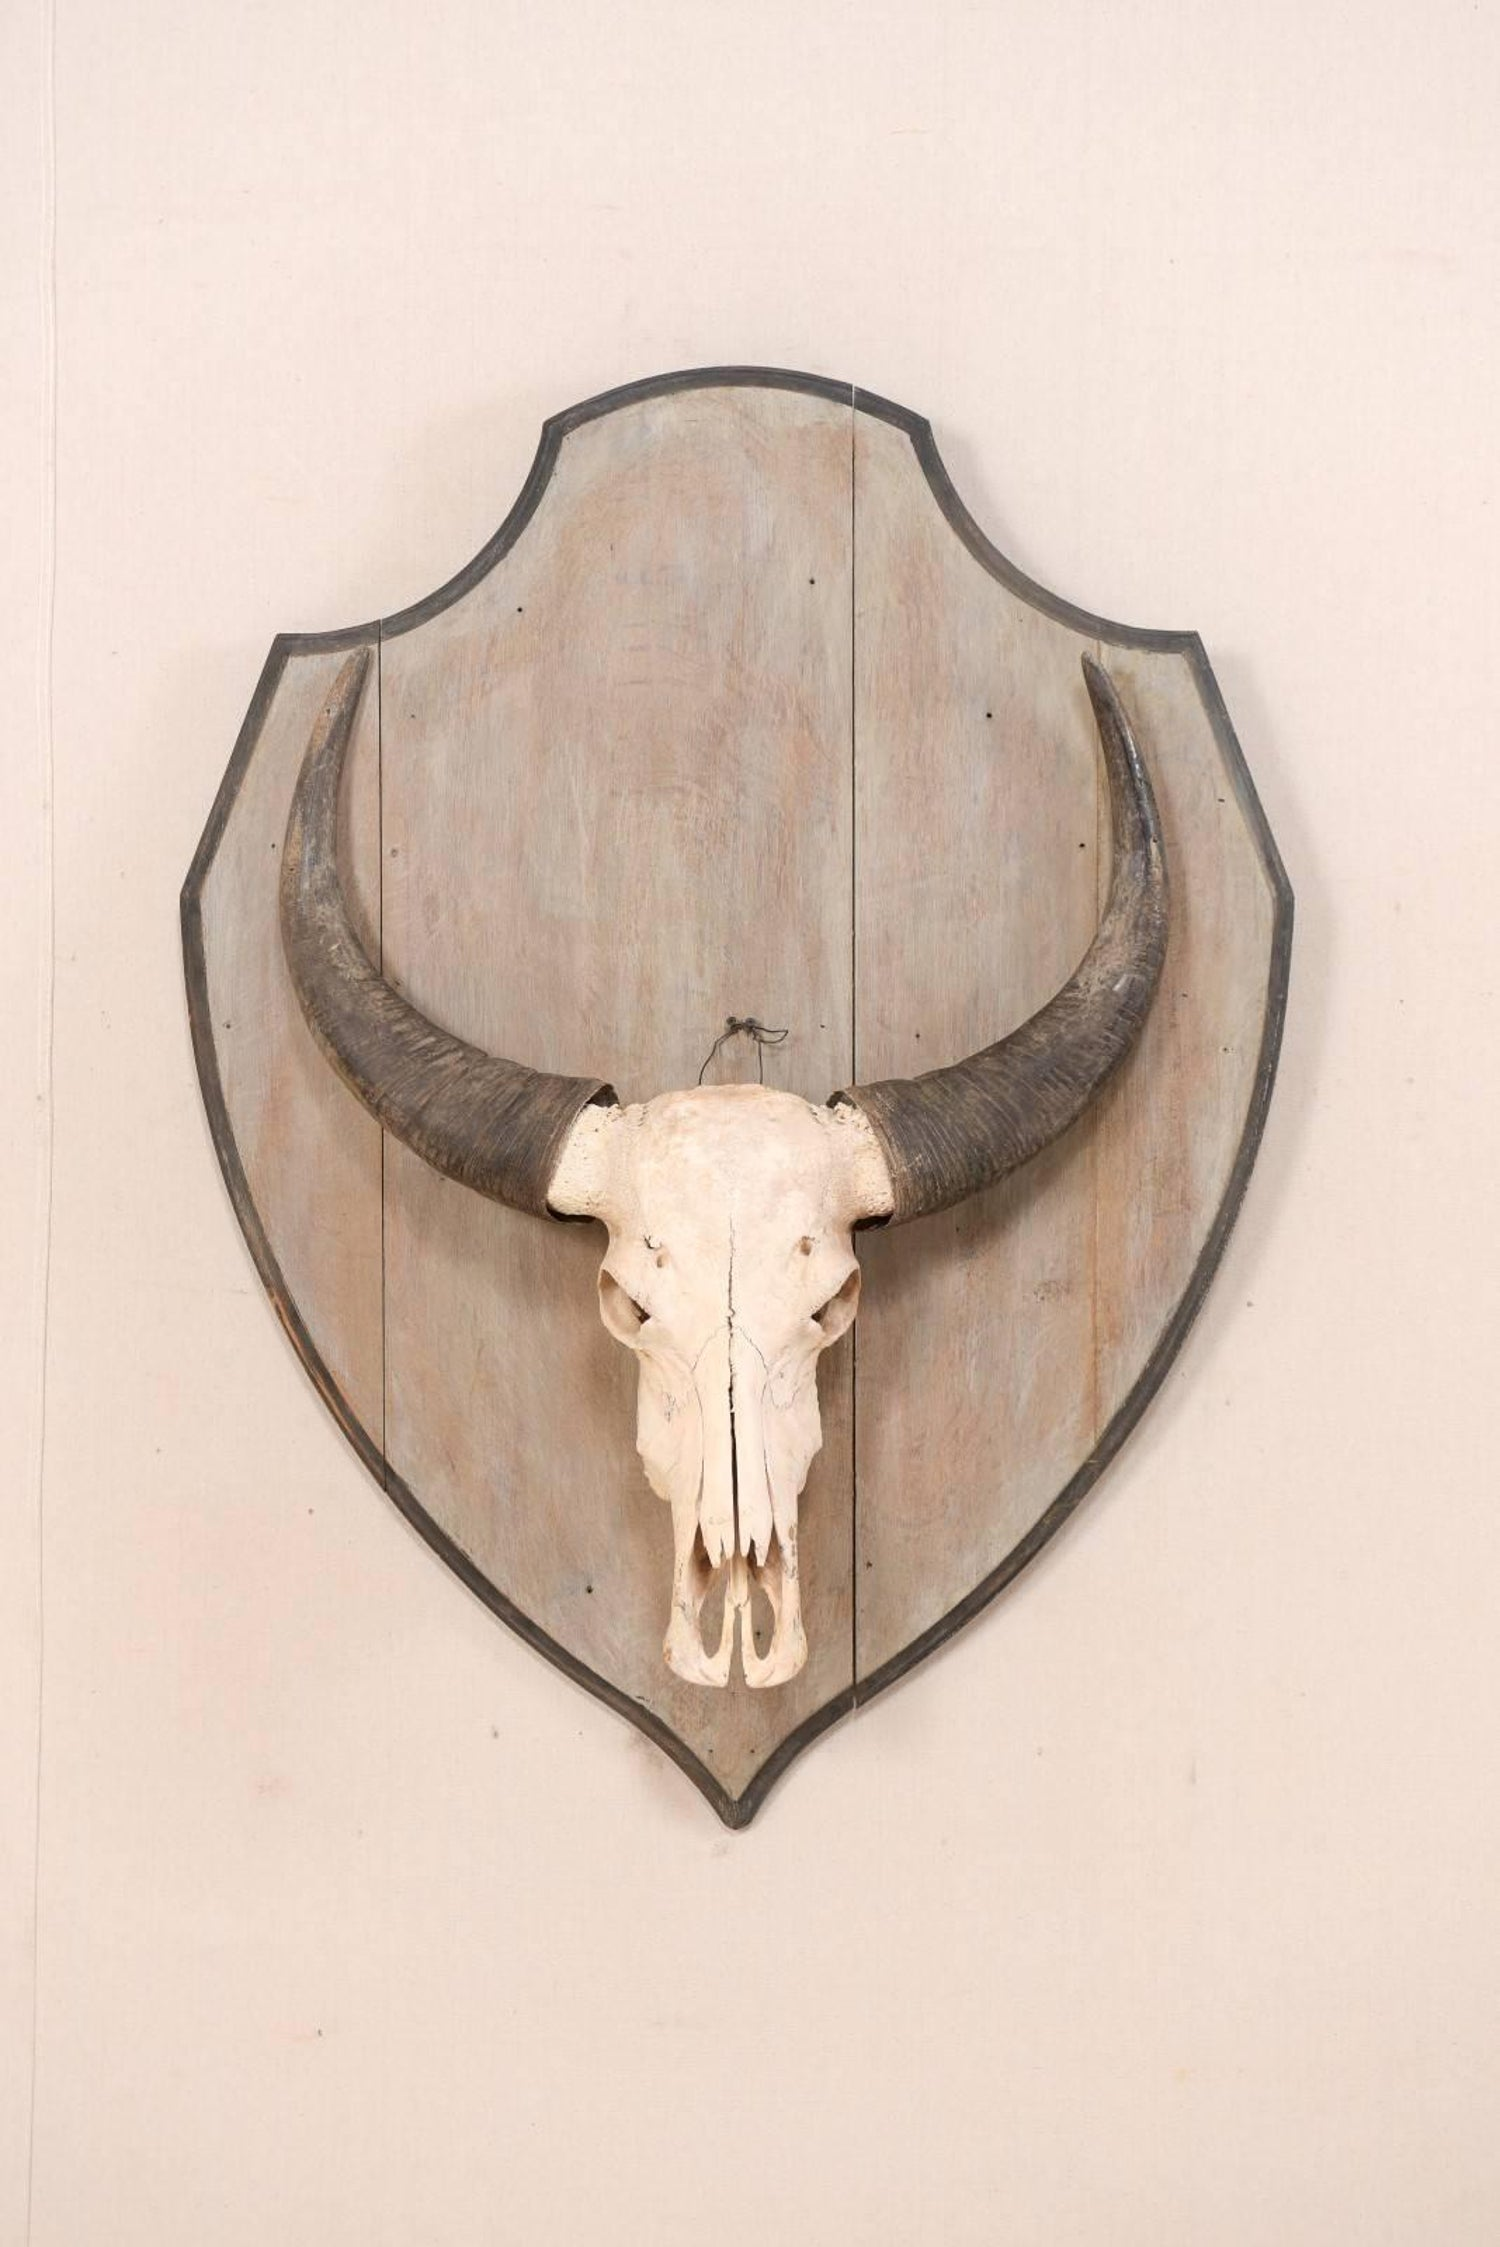 f16eea46904 European Vintage Water Buffalo Skull Mounted on Shield-Shaped Wood Plaque  For Sale at 1stdibs